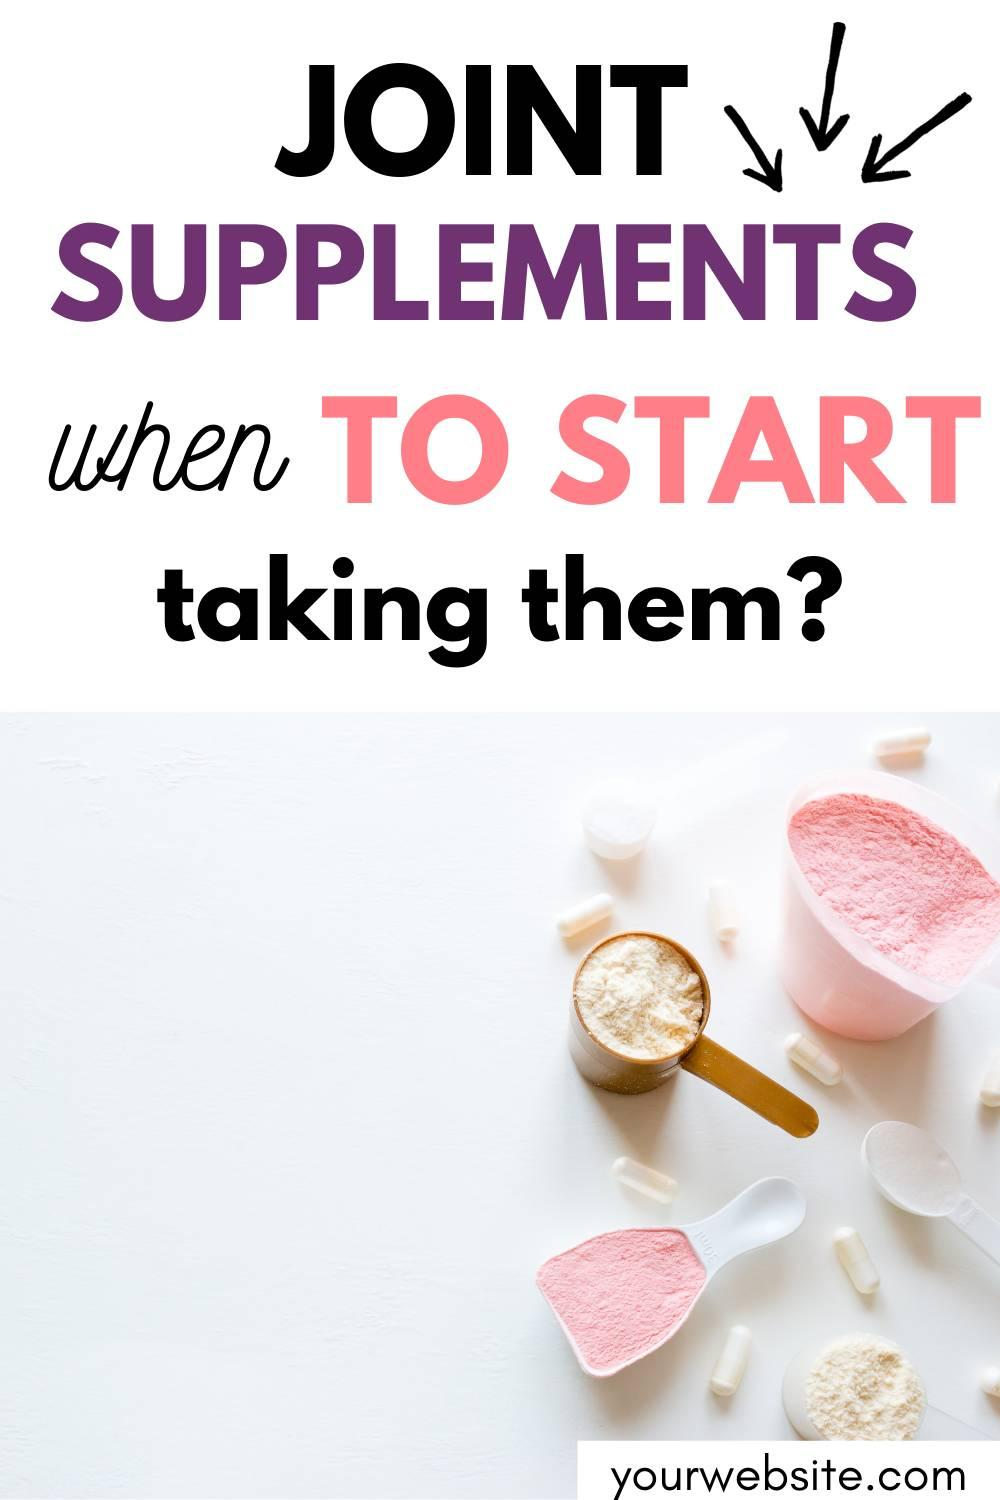 As we age, supporting hip and joint health becomes more and more important, but when should we start taking a joint supplement?